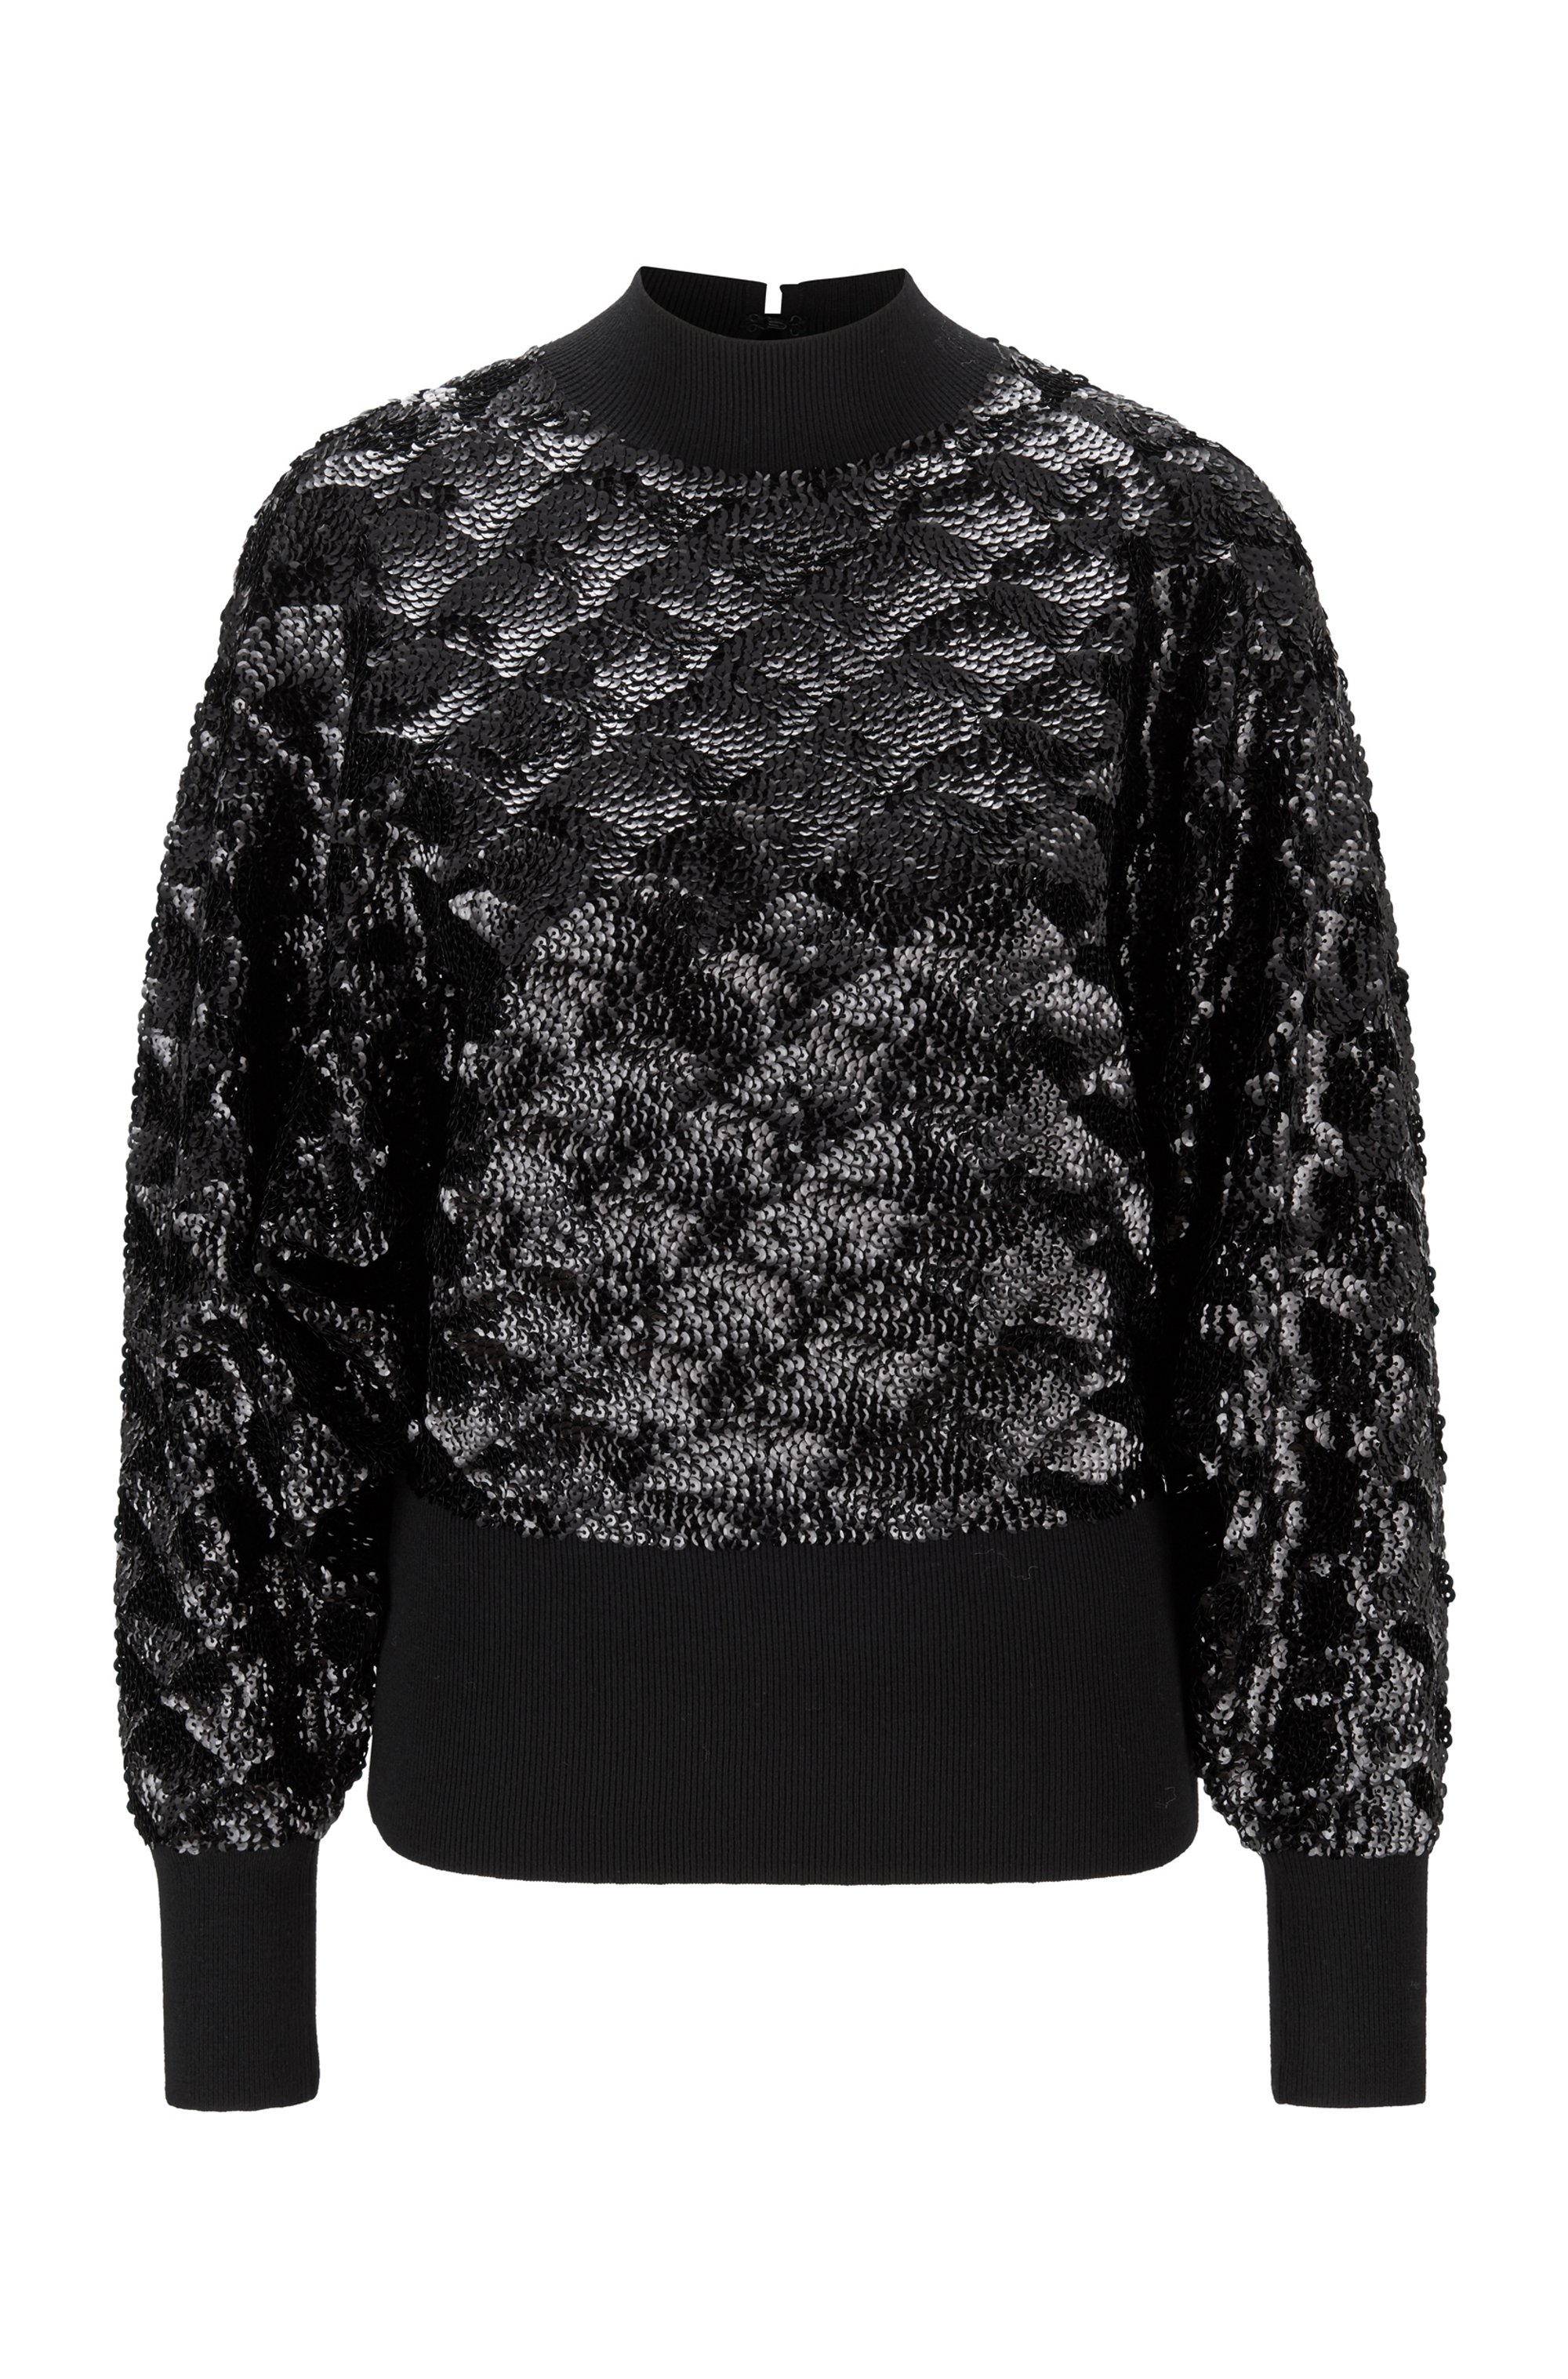 Sequinned sweater in a wool blend, Black